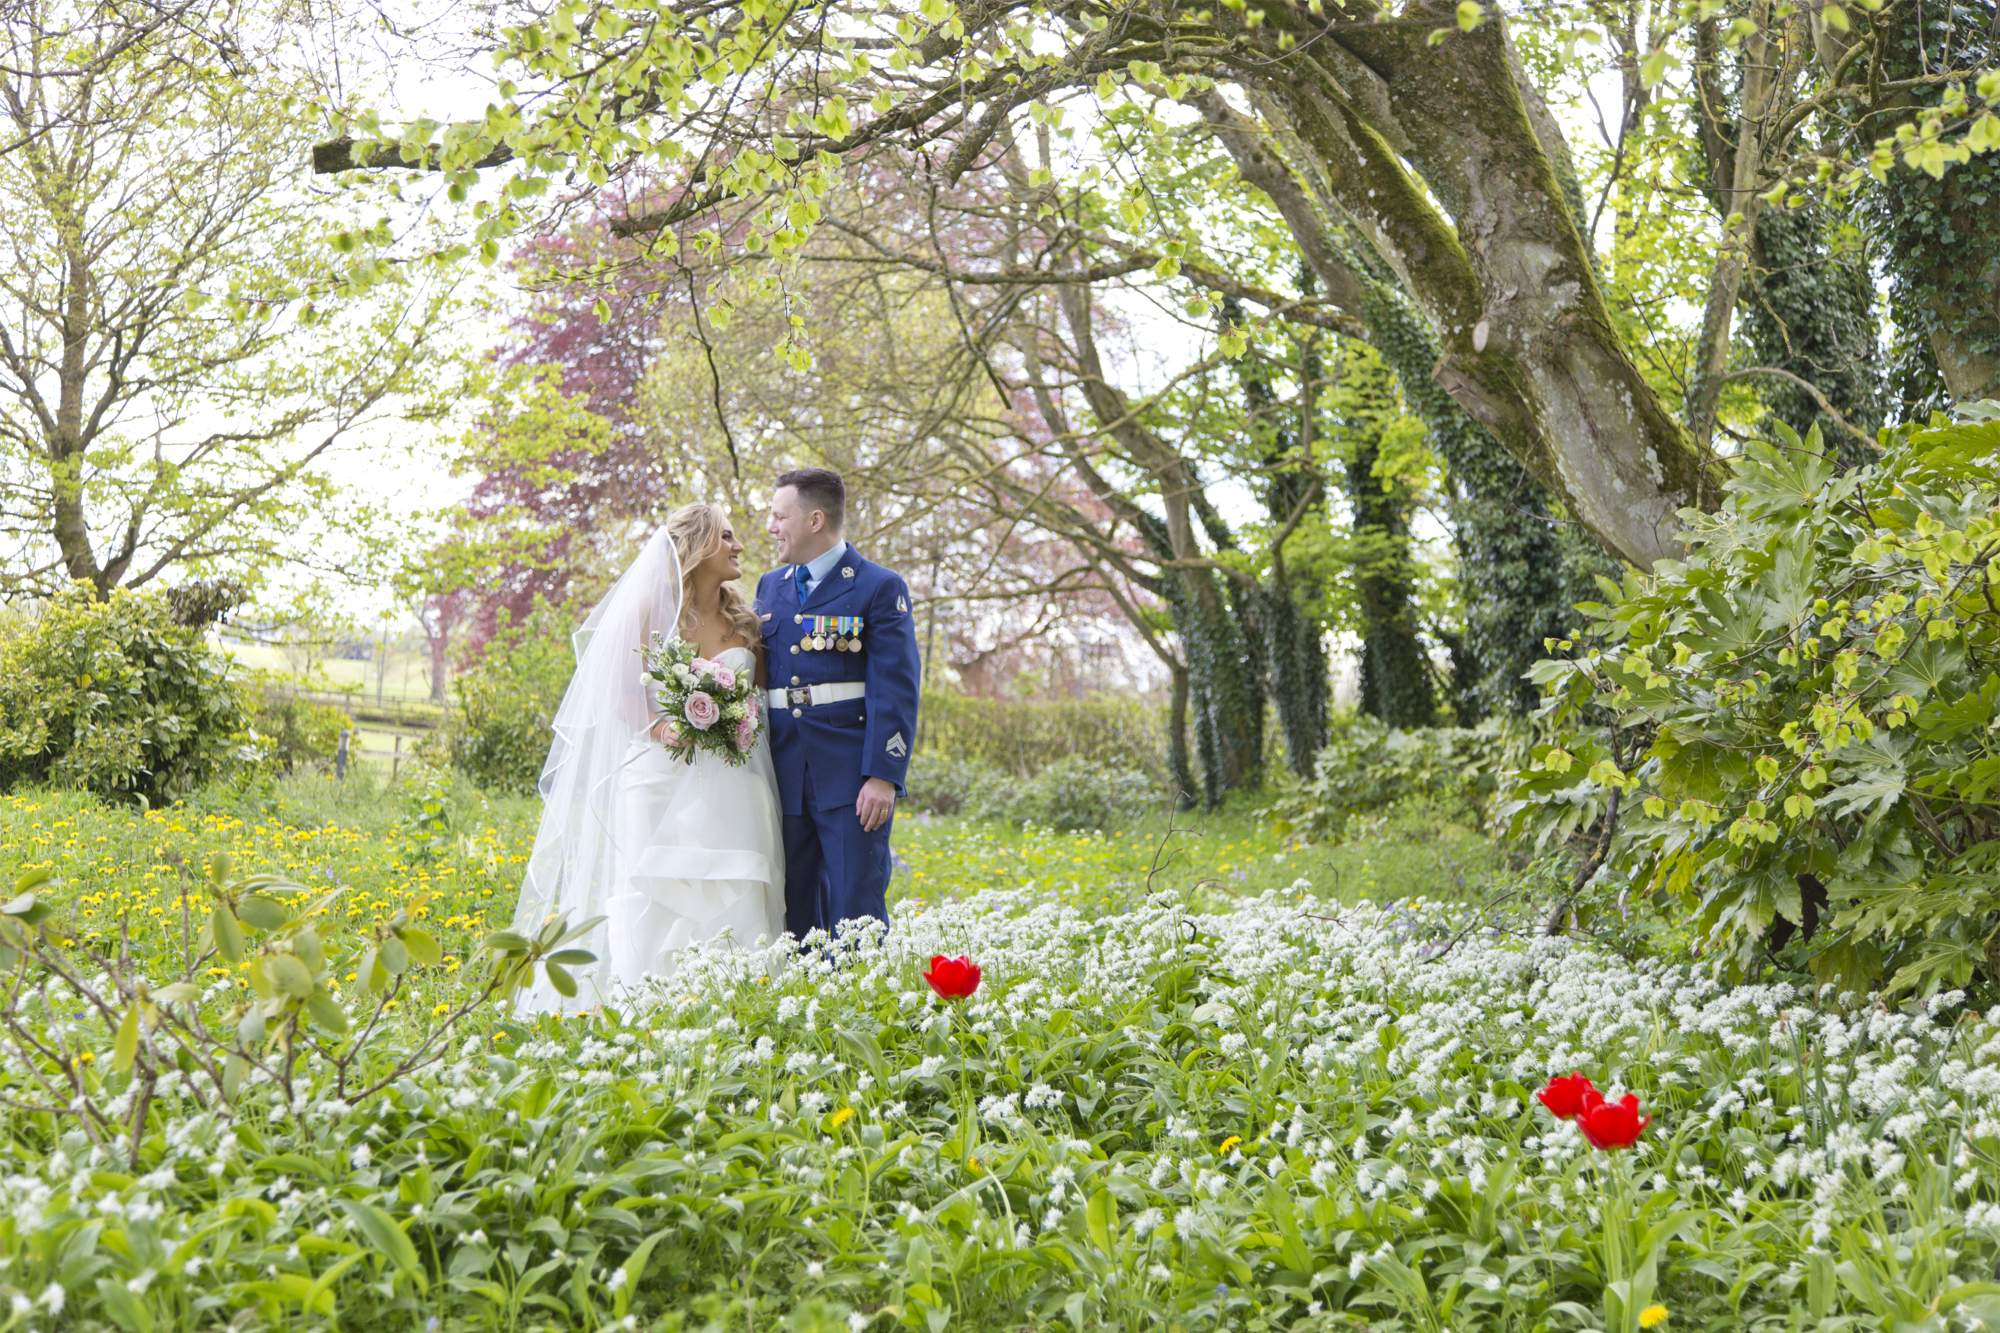 Wedding Photographers Portlaoise, Call 0861946237,  Wedding Photography Laois, Midlands Park Hotel, Killenshin Hotel, Roundwood House Hotel by Aoileann Nic Dhonnacha, Ireland